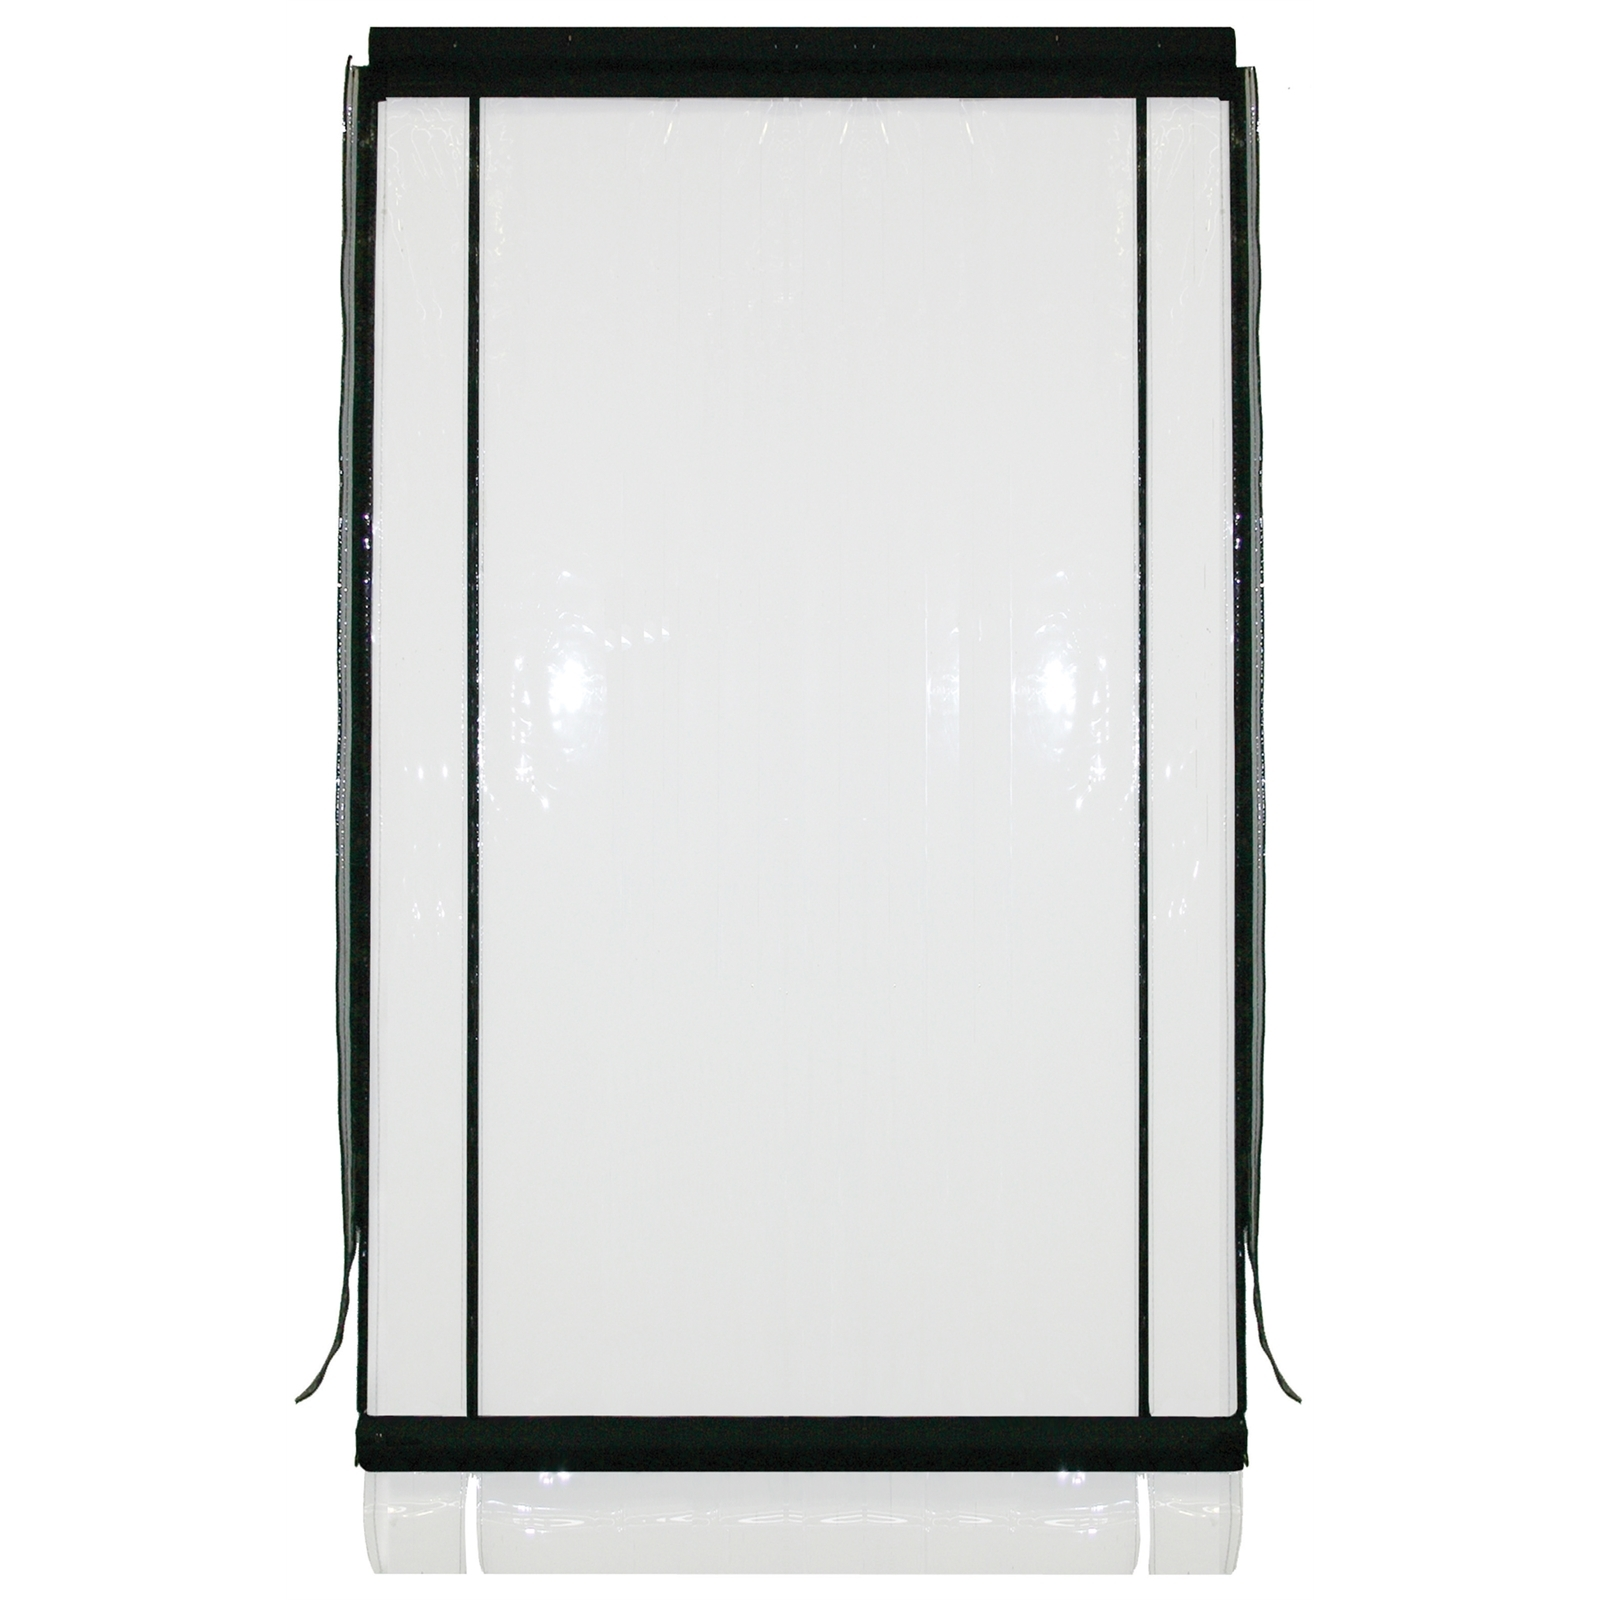 Bistro Blinds 0.75mm PVC Outdoor Blind - Clear / Black 900mm x 2400mm